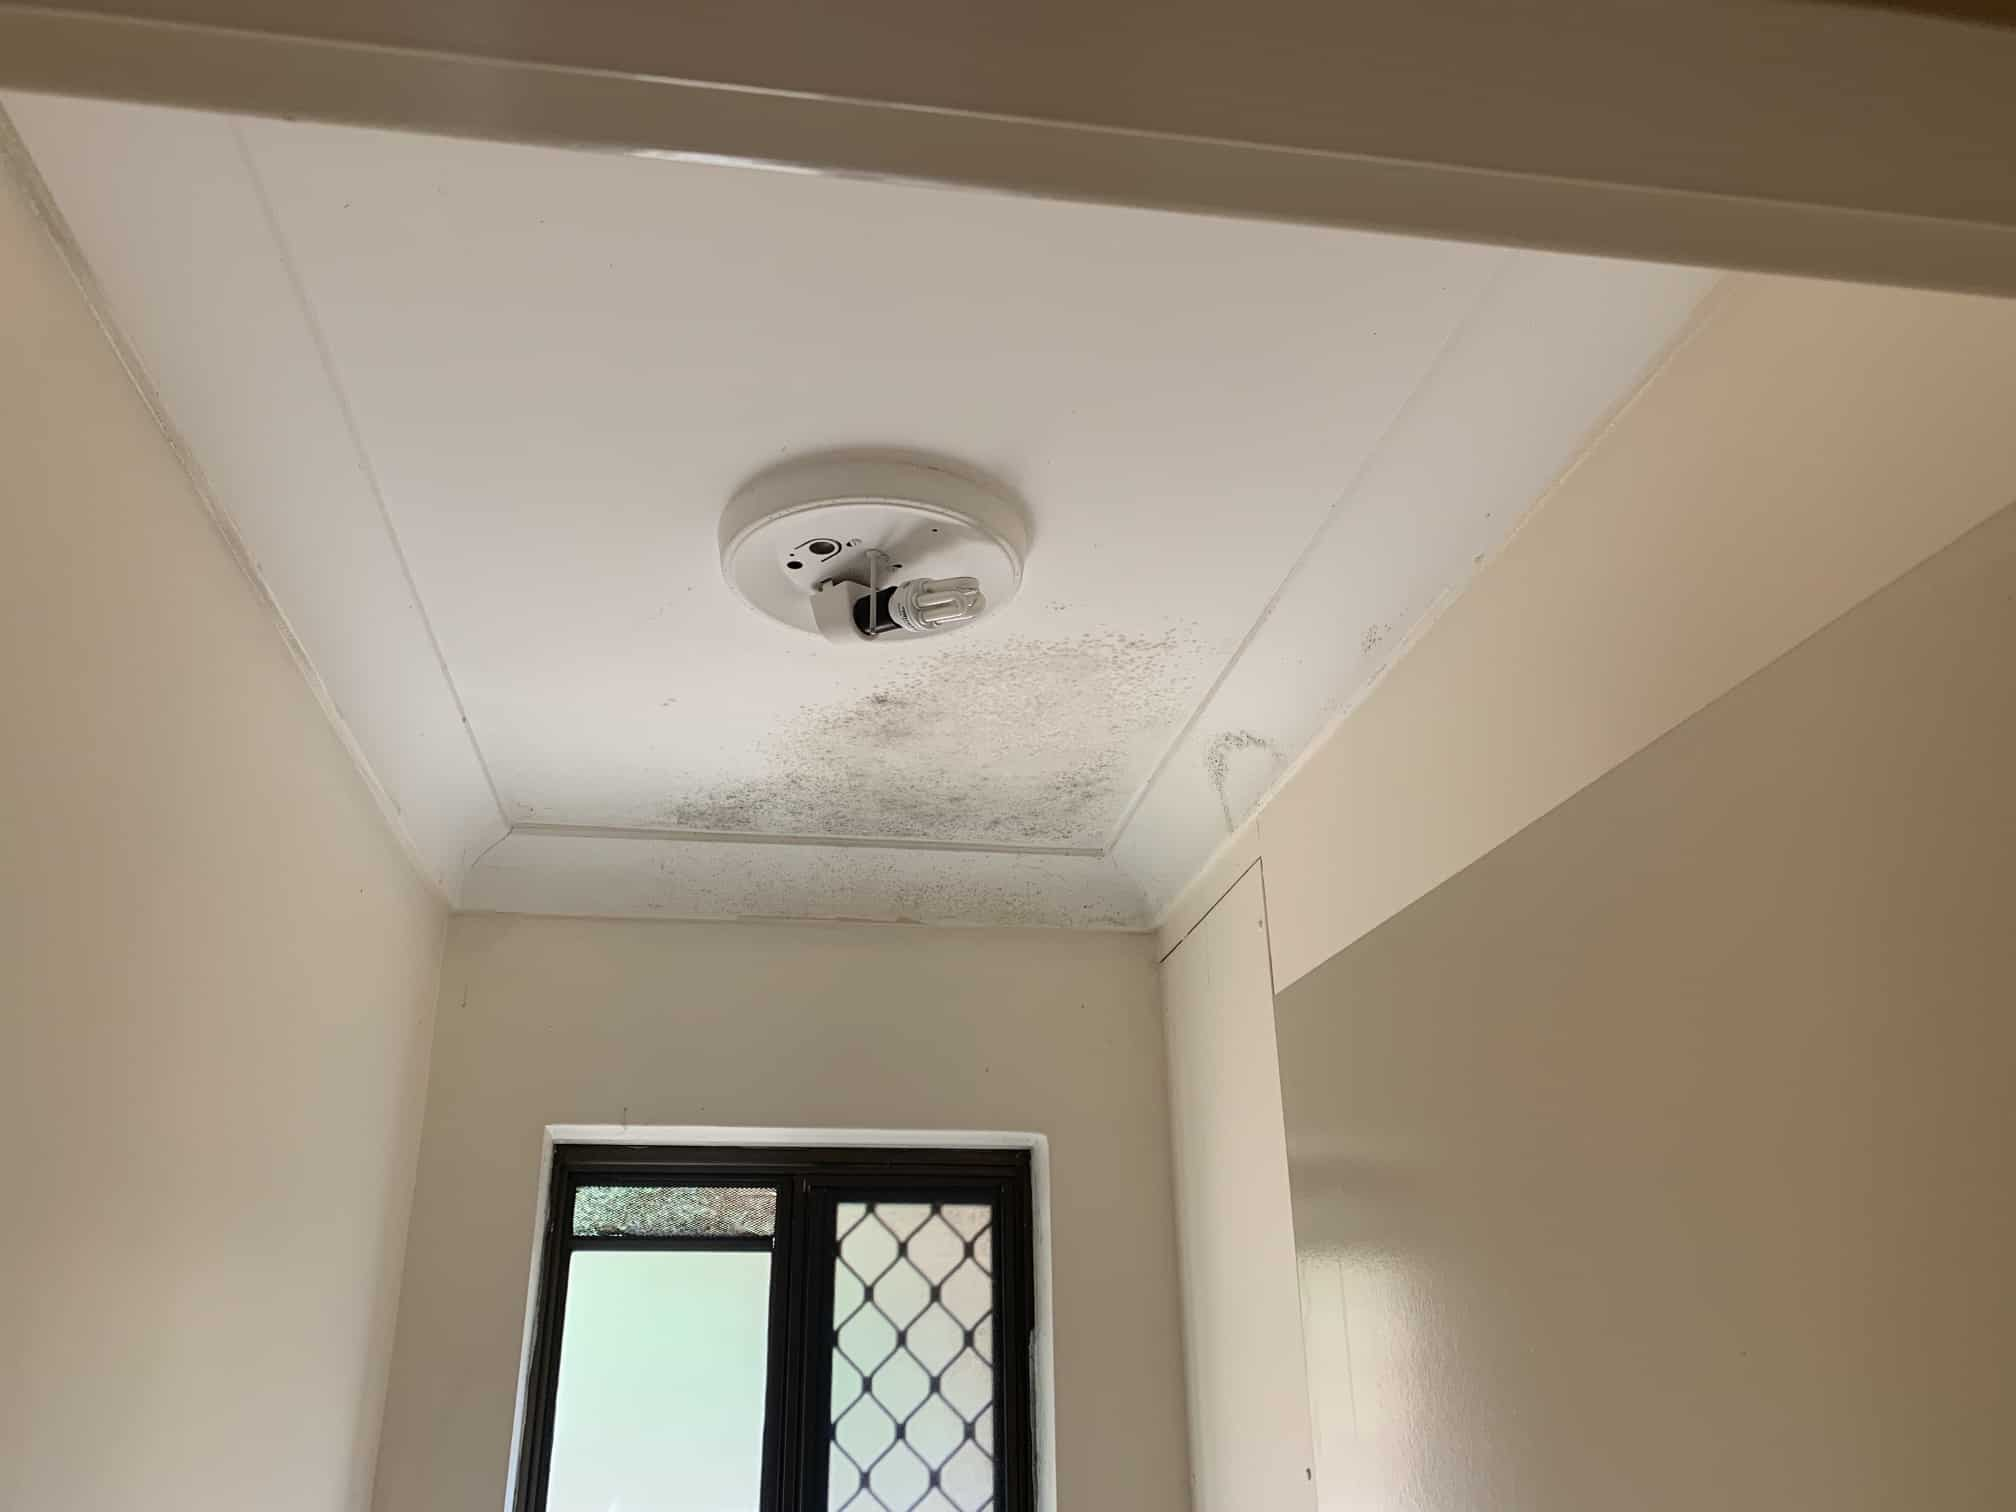 mould growing on ceiling